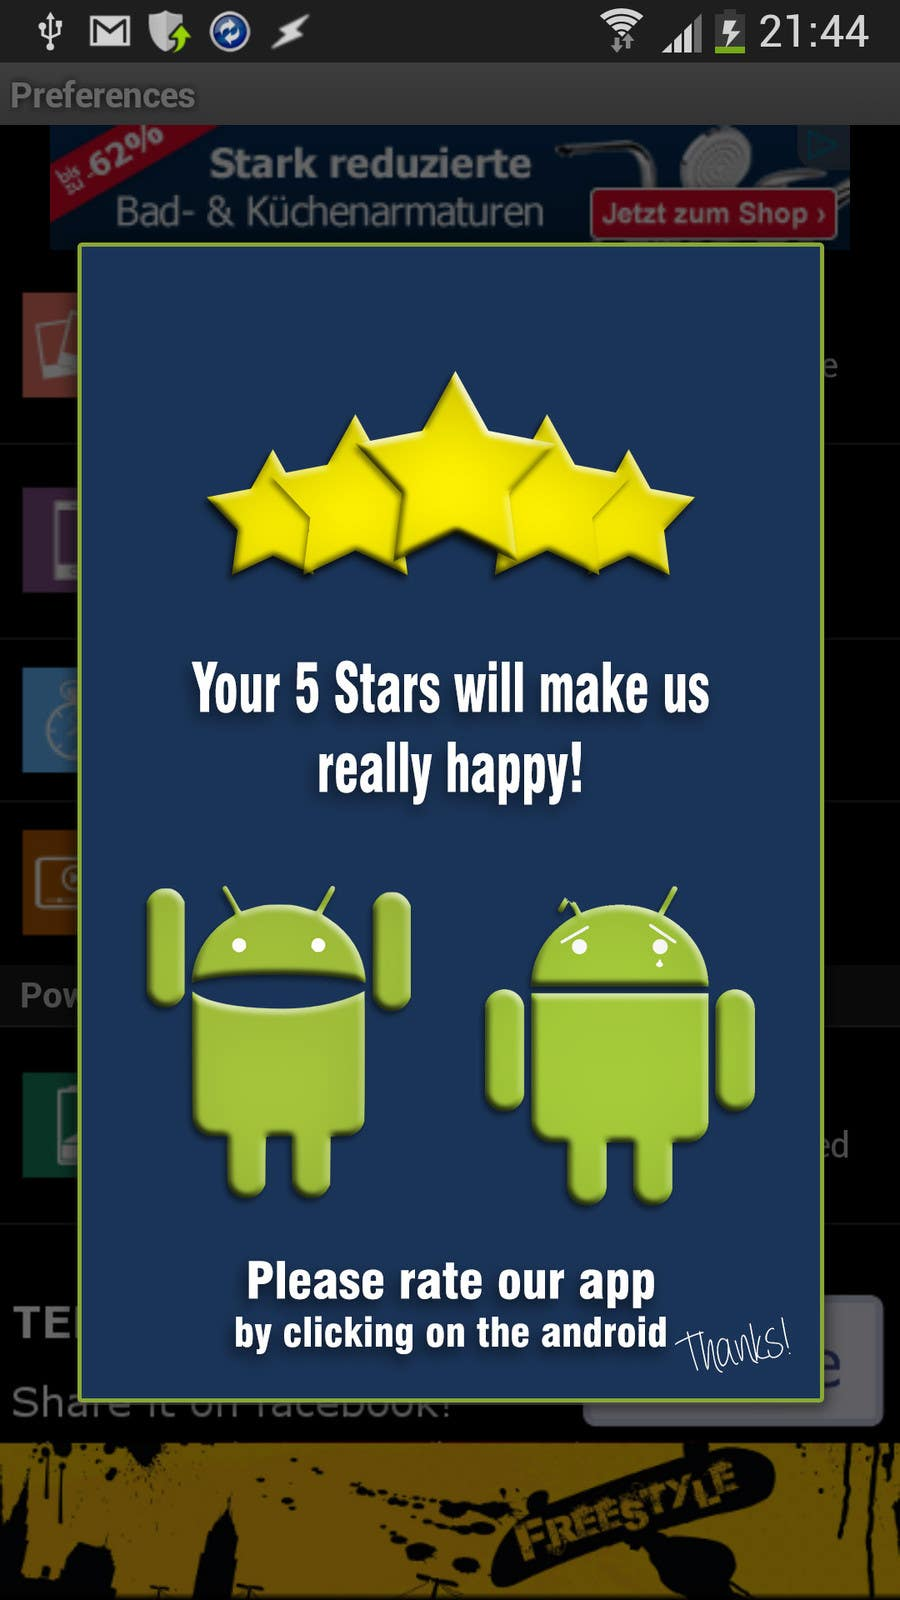 #24 for Rating Motivation Screen for Android App by DanaDouqa